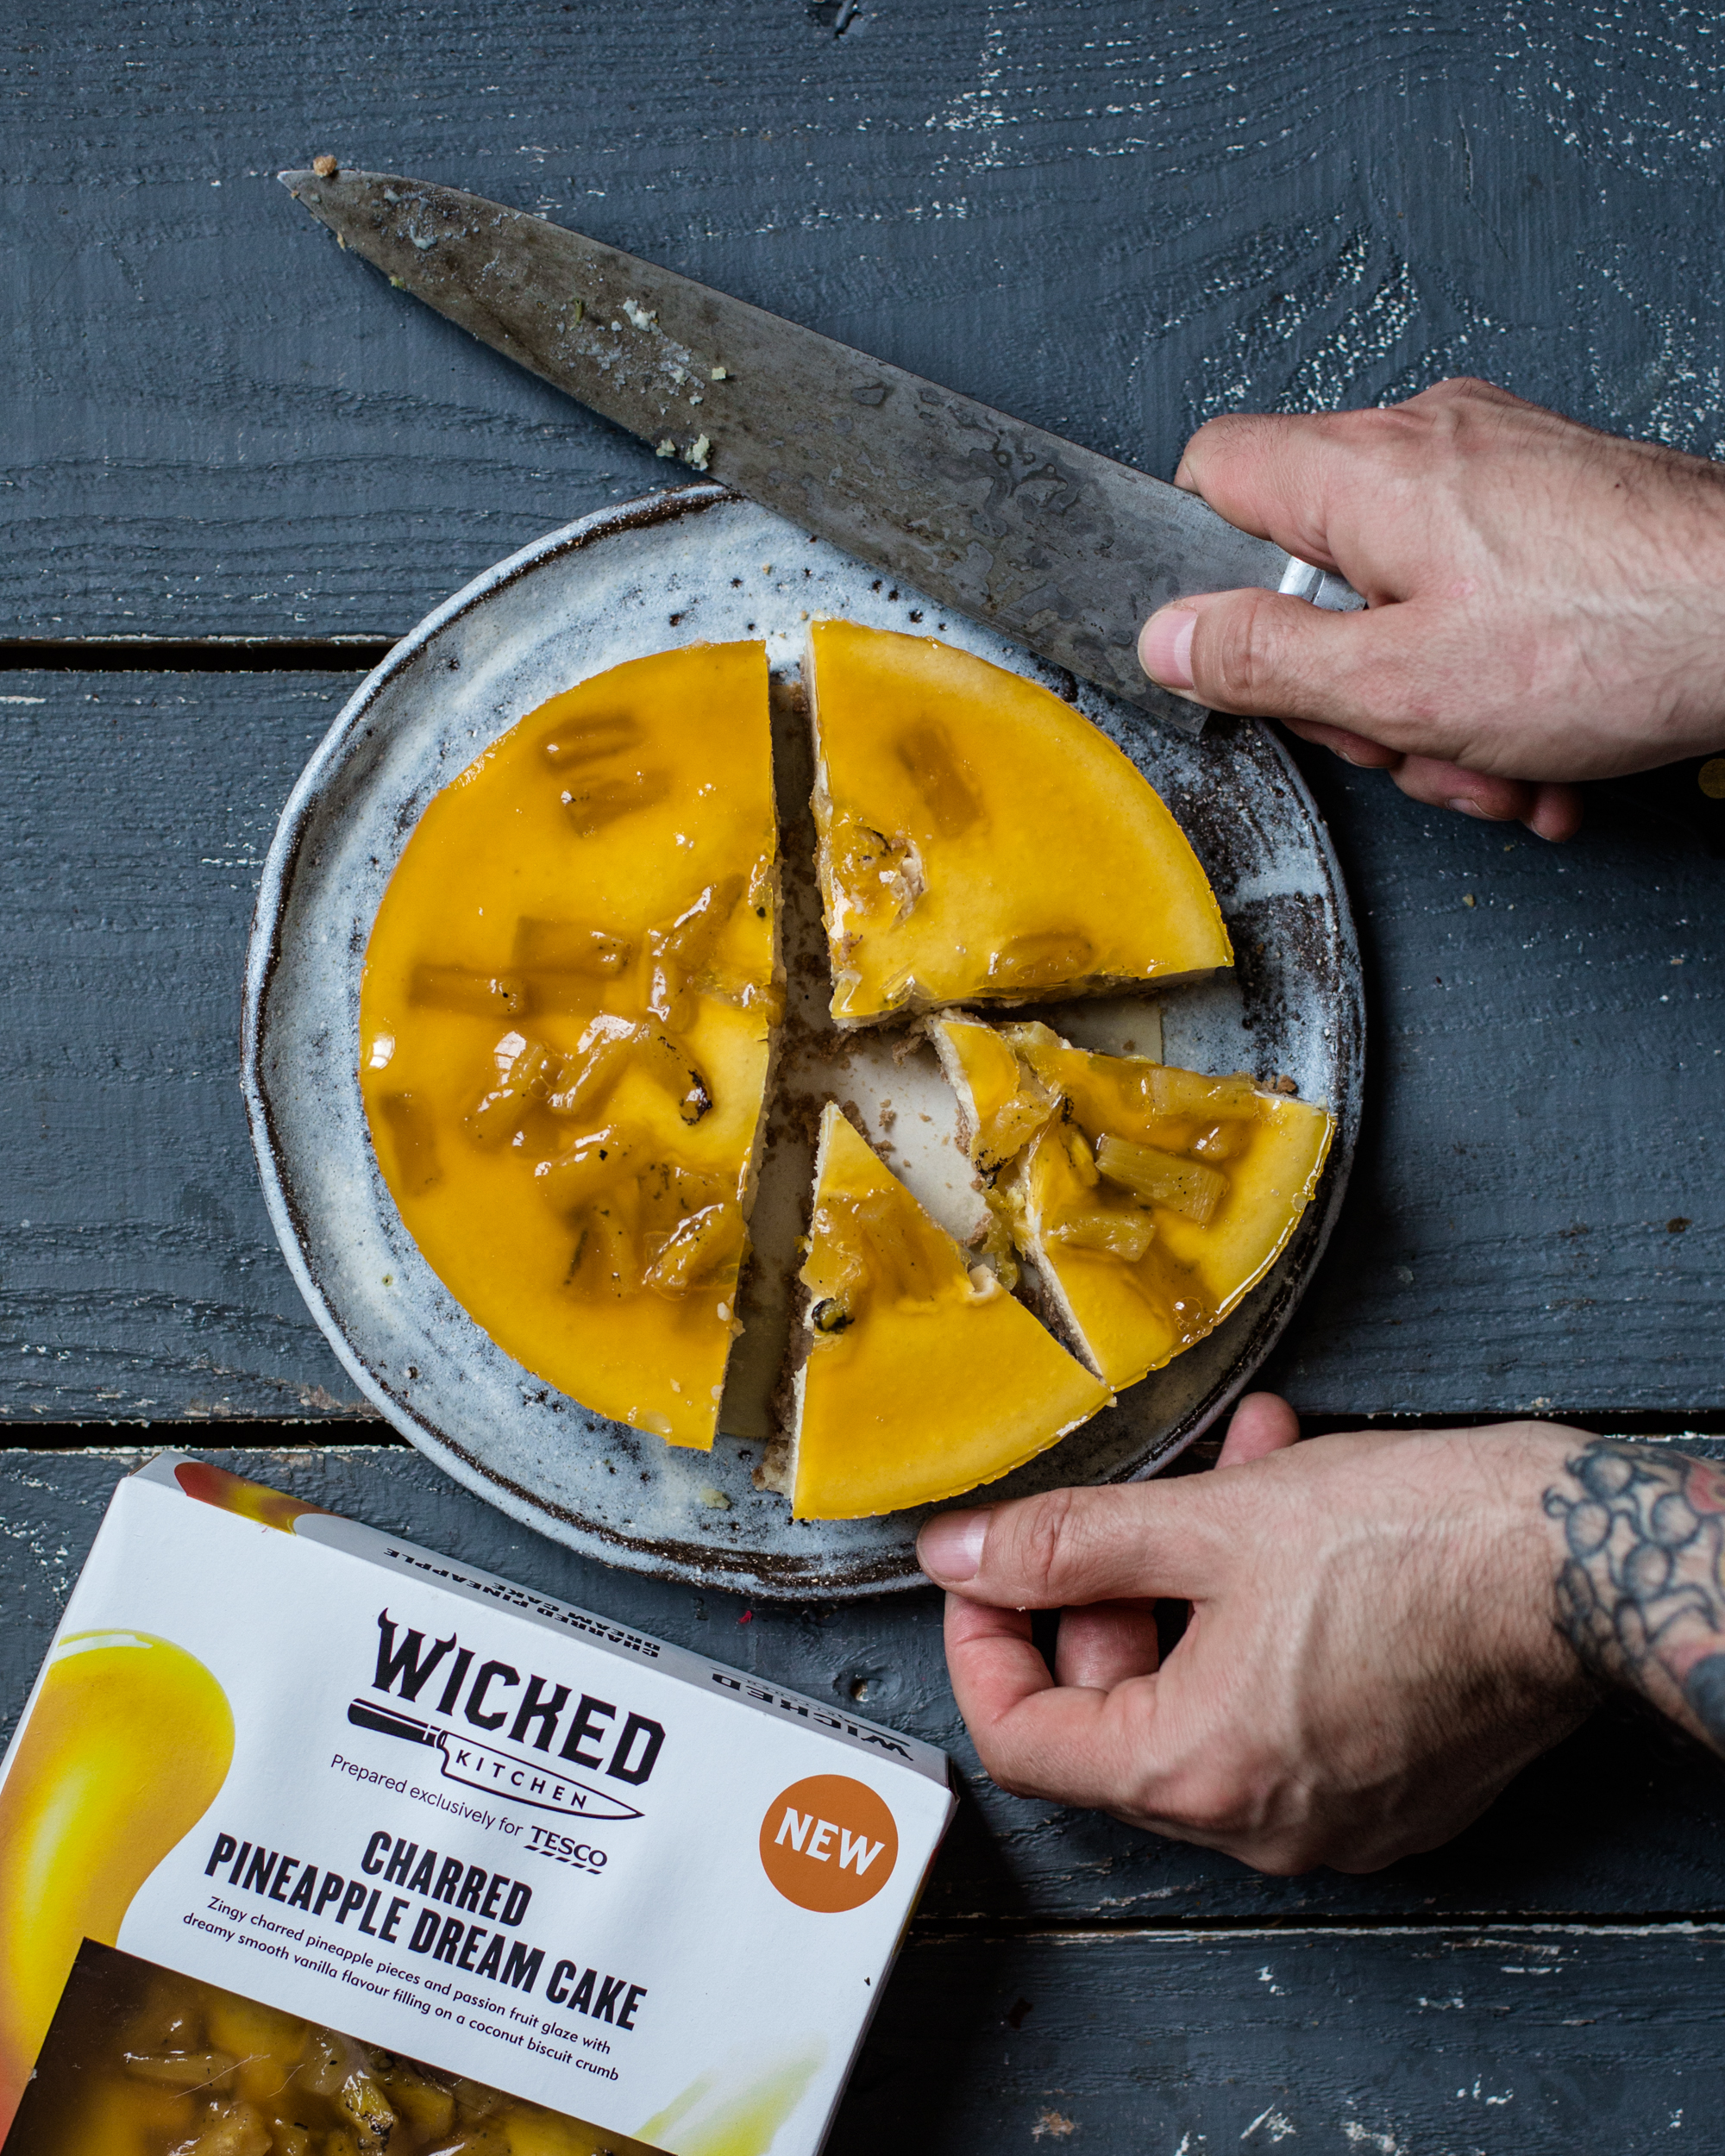 wicked kitchen launches new products